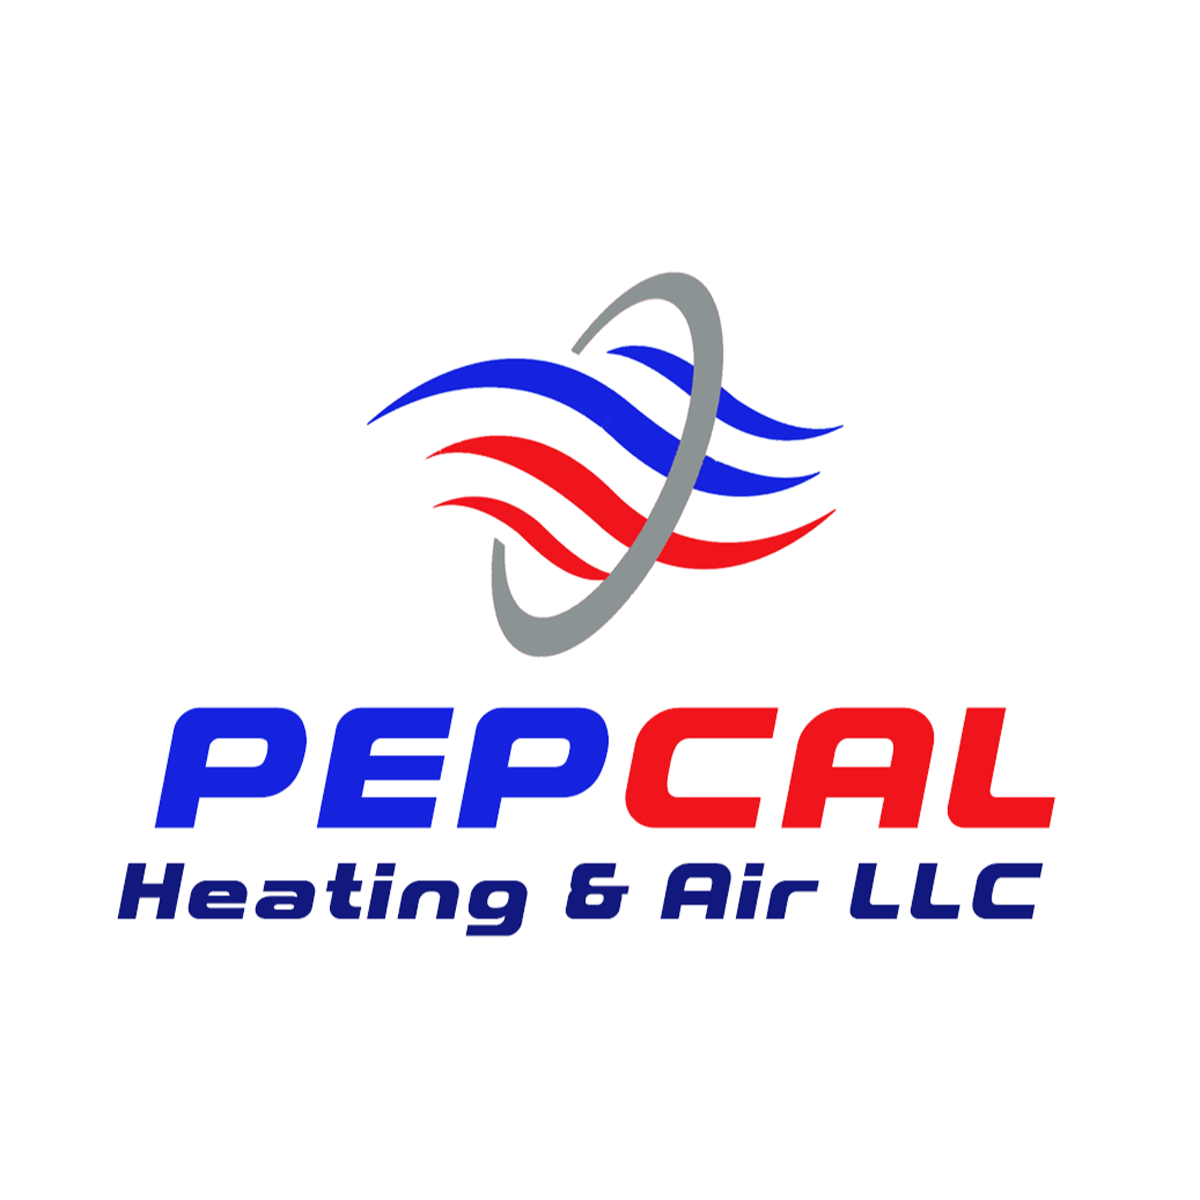 Pepcal Heating & Air LLC